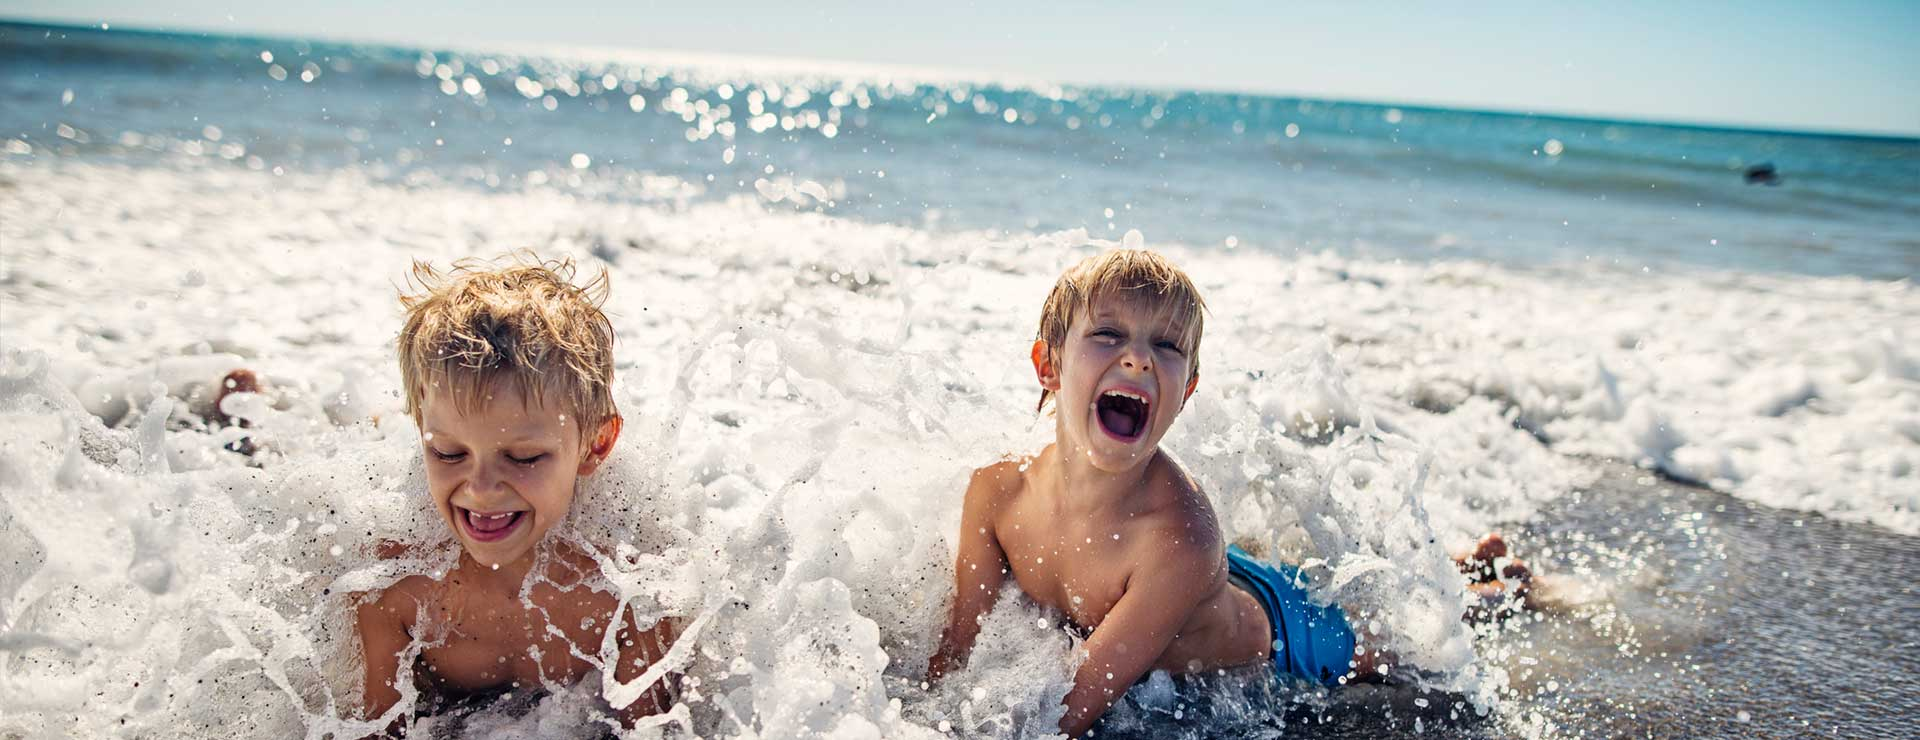 Two young boys play in the ocean waves.